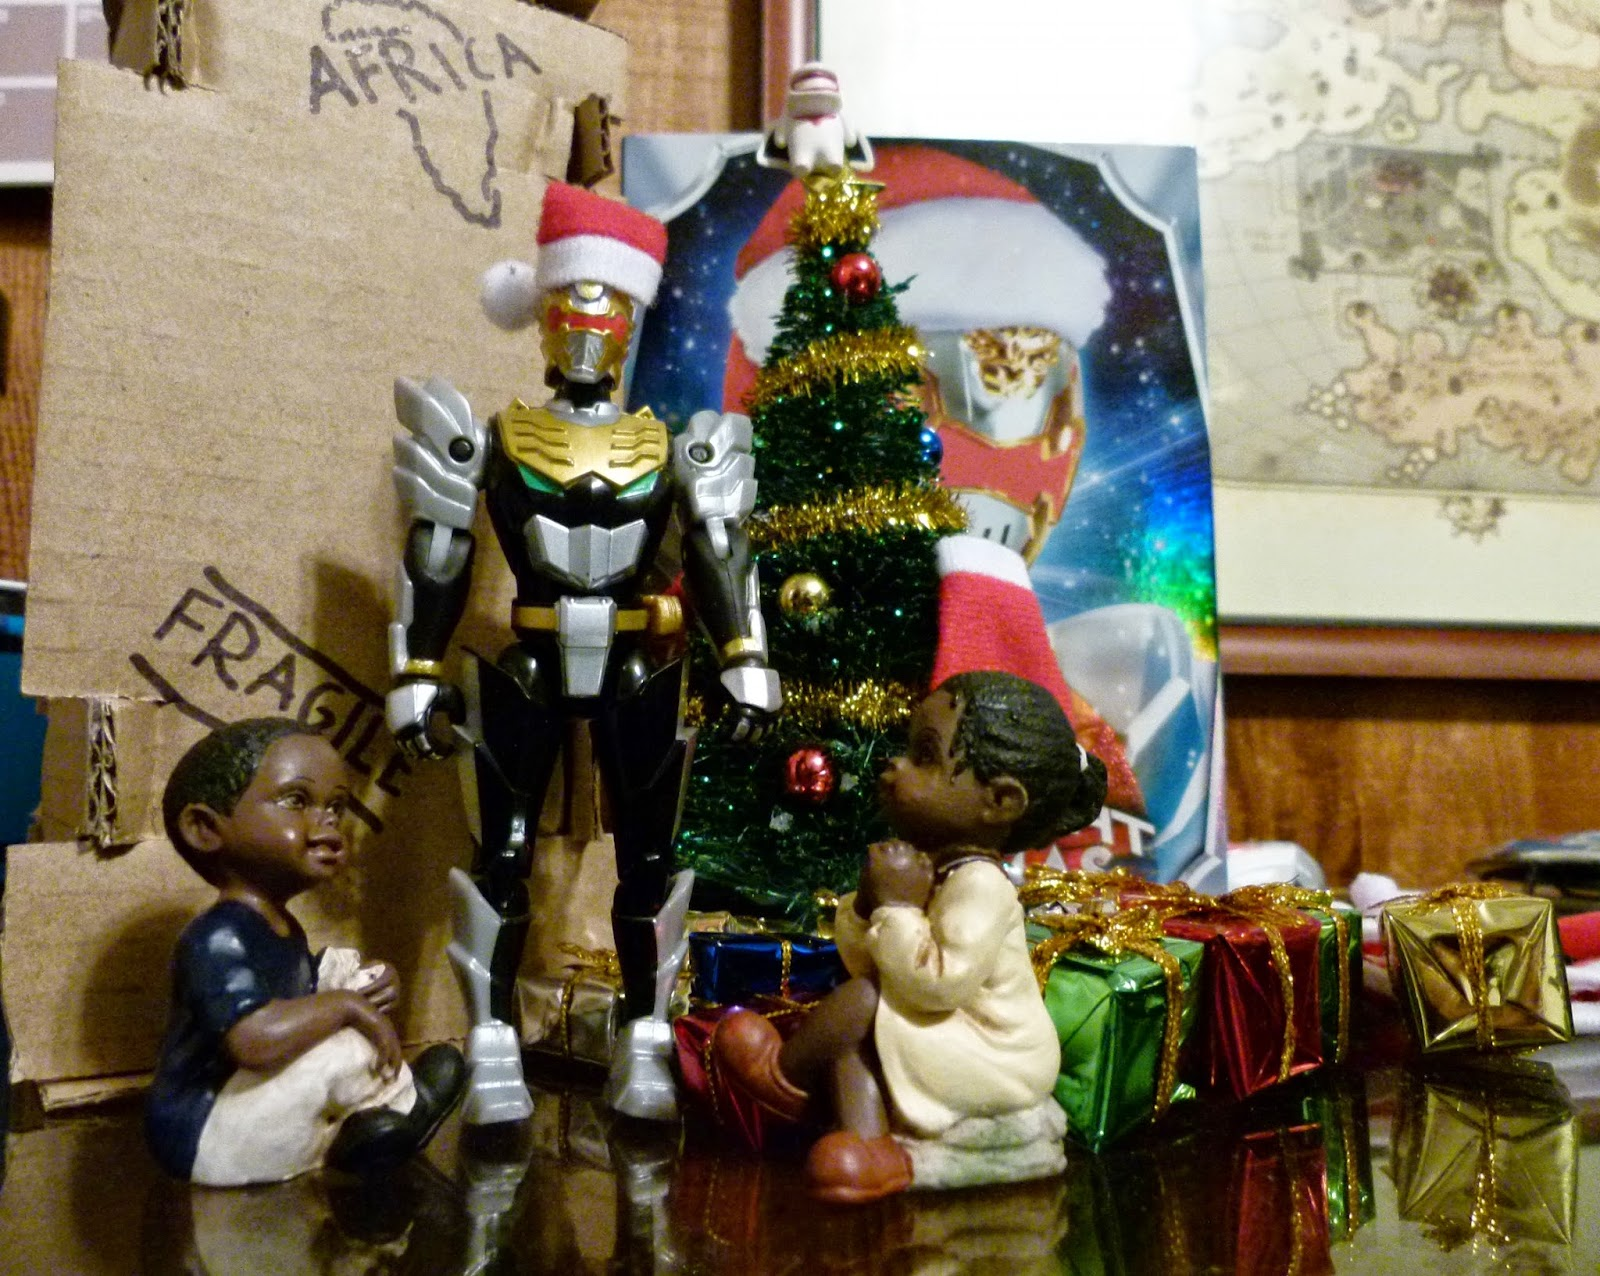 Power Rangers Christmas Tree.Things To Do In Los Angeles Robo Knight Before Christmas